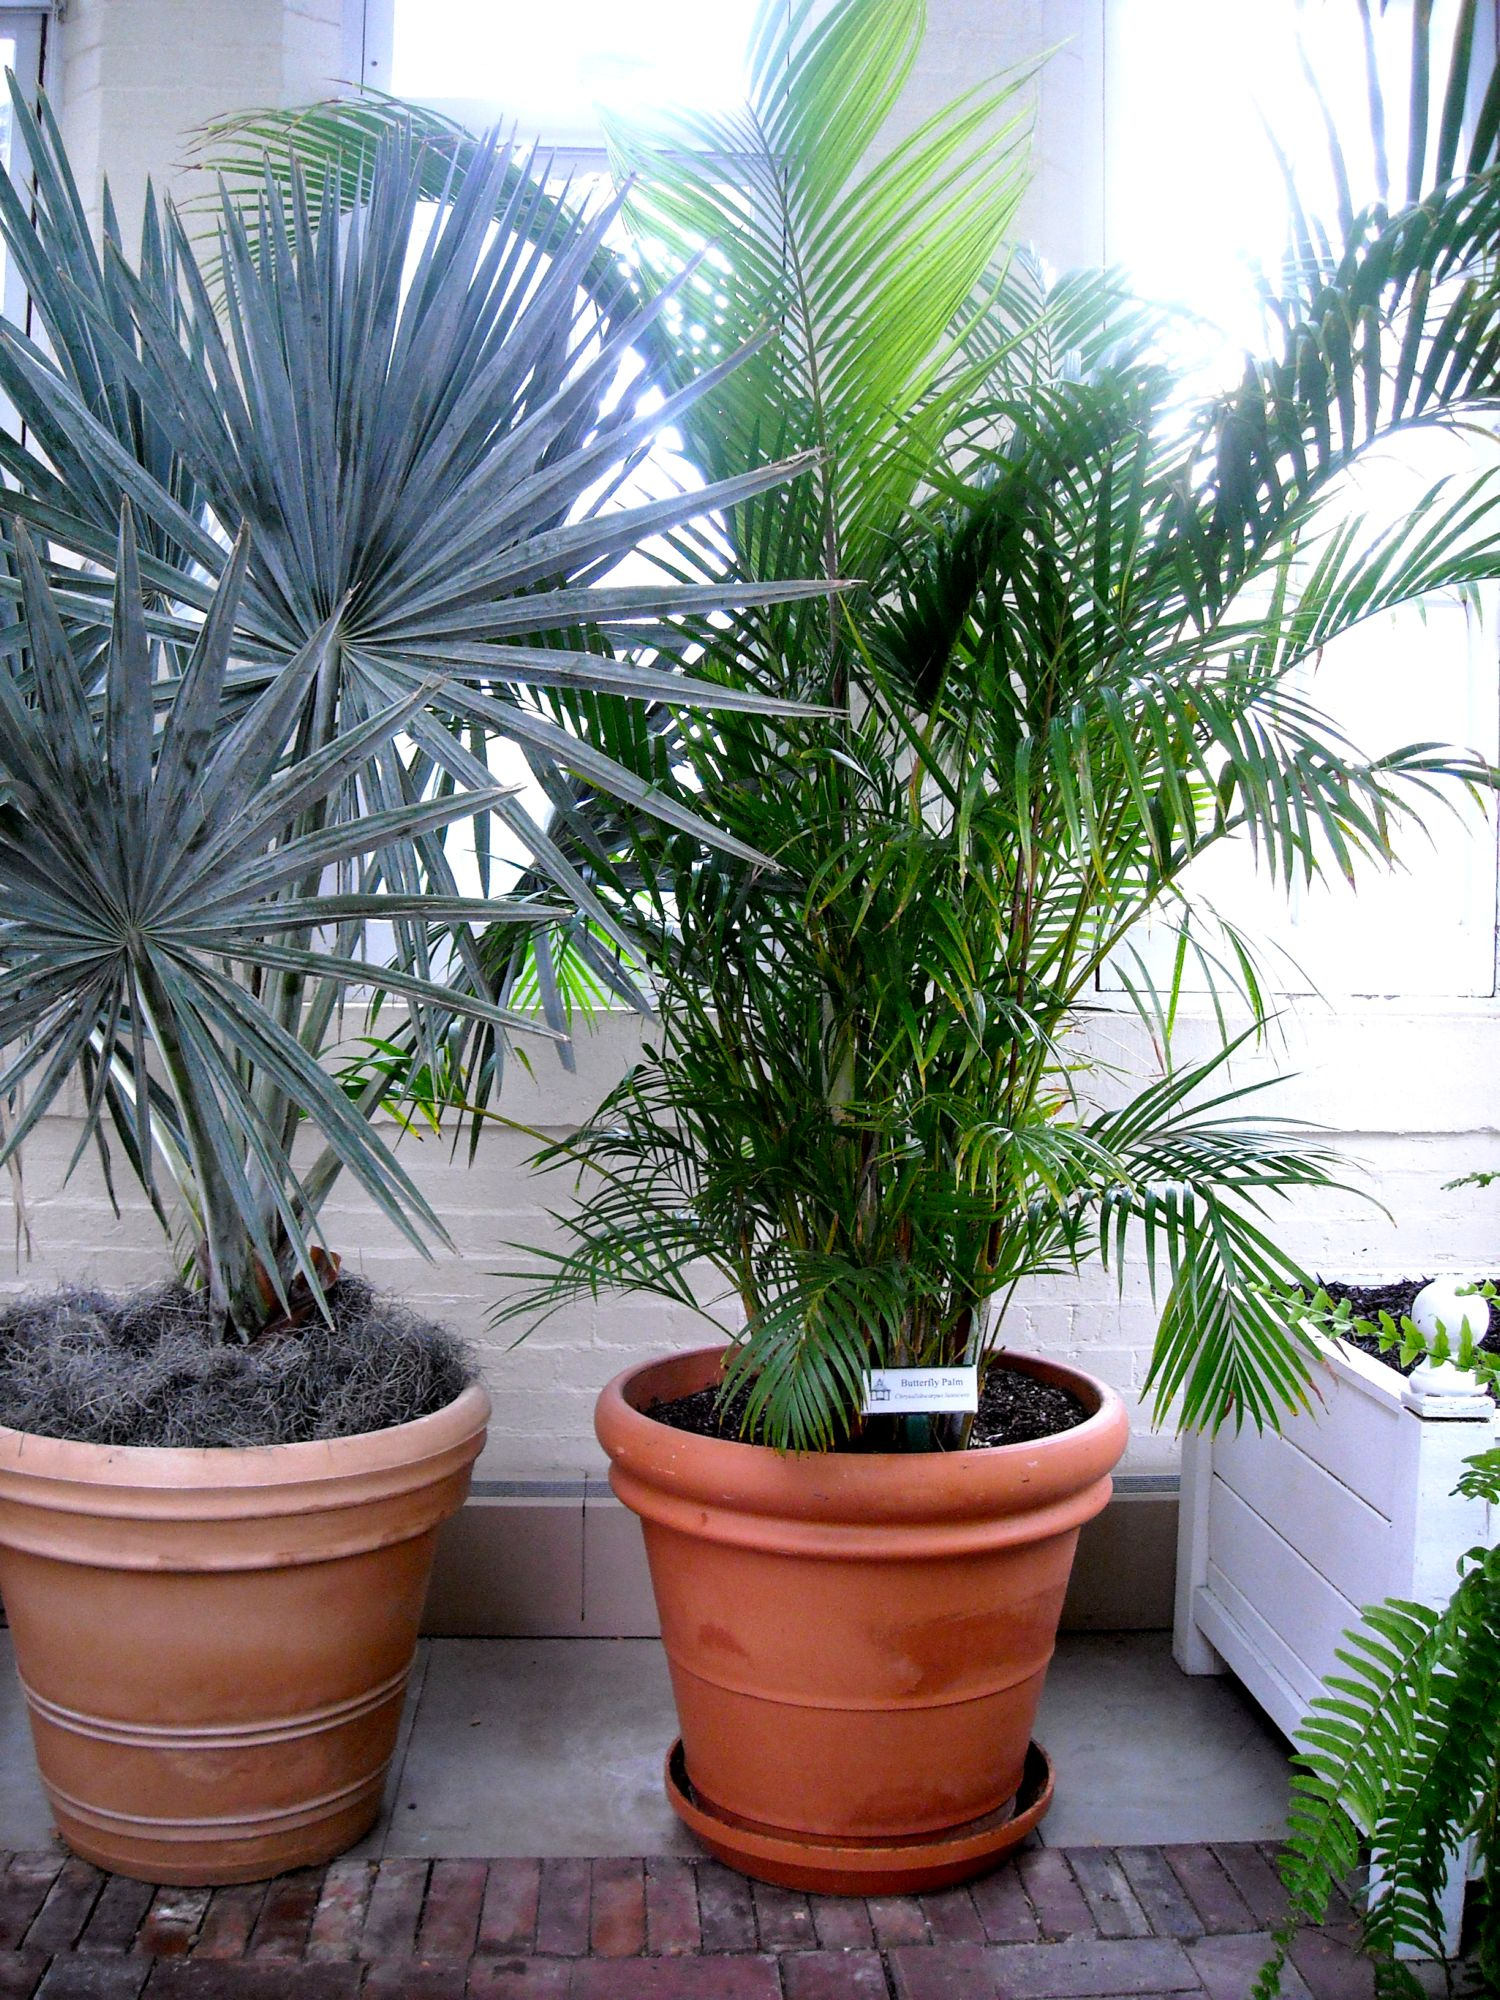 Dypsis Lutescens Useful Tropical Plants Palm Piper House Walter Knoll Florist Client Exotic Palm